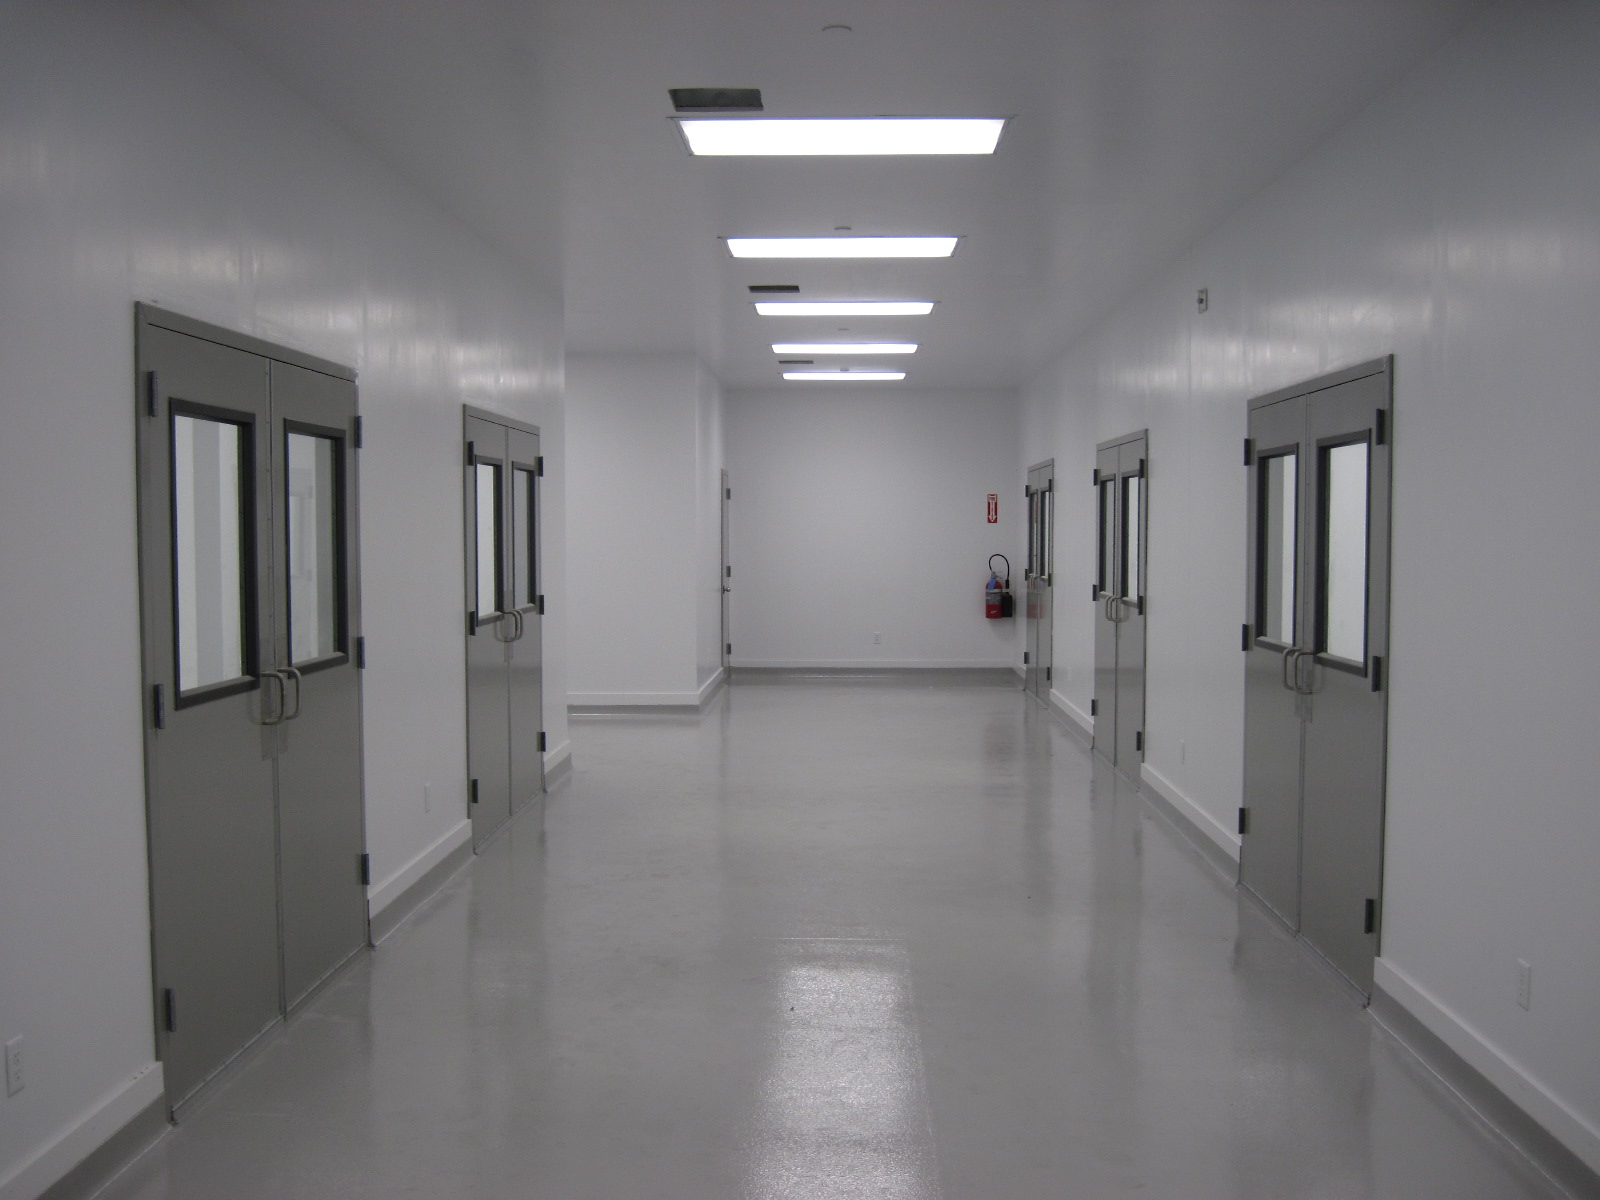 Dry Wall Construction : Commercial drywall construction